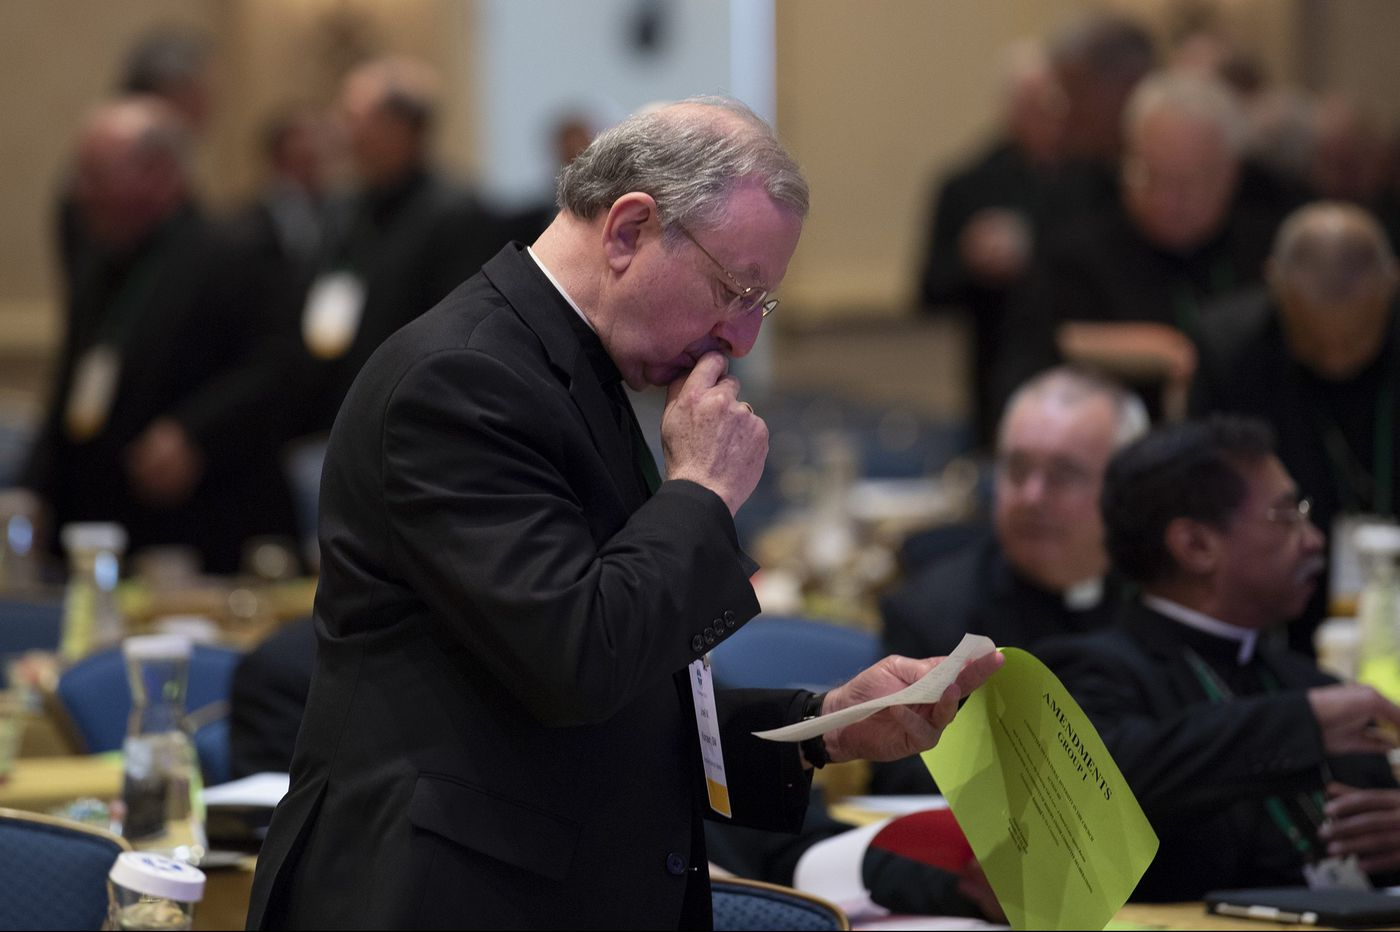 U.S. Catholic bishops leave Baltimore conference without acting on sex abuse reforms